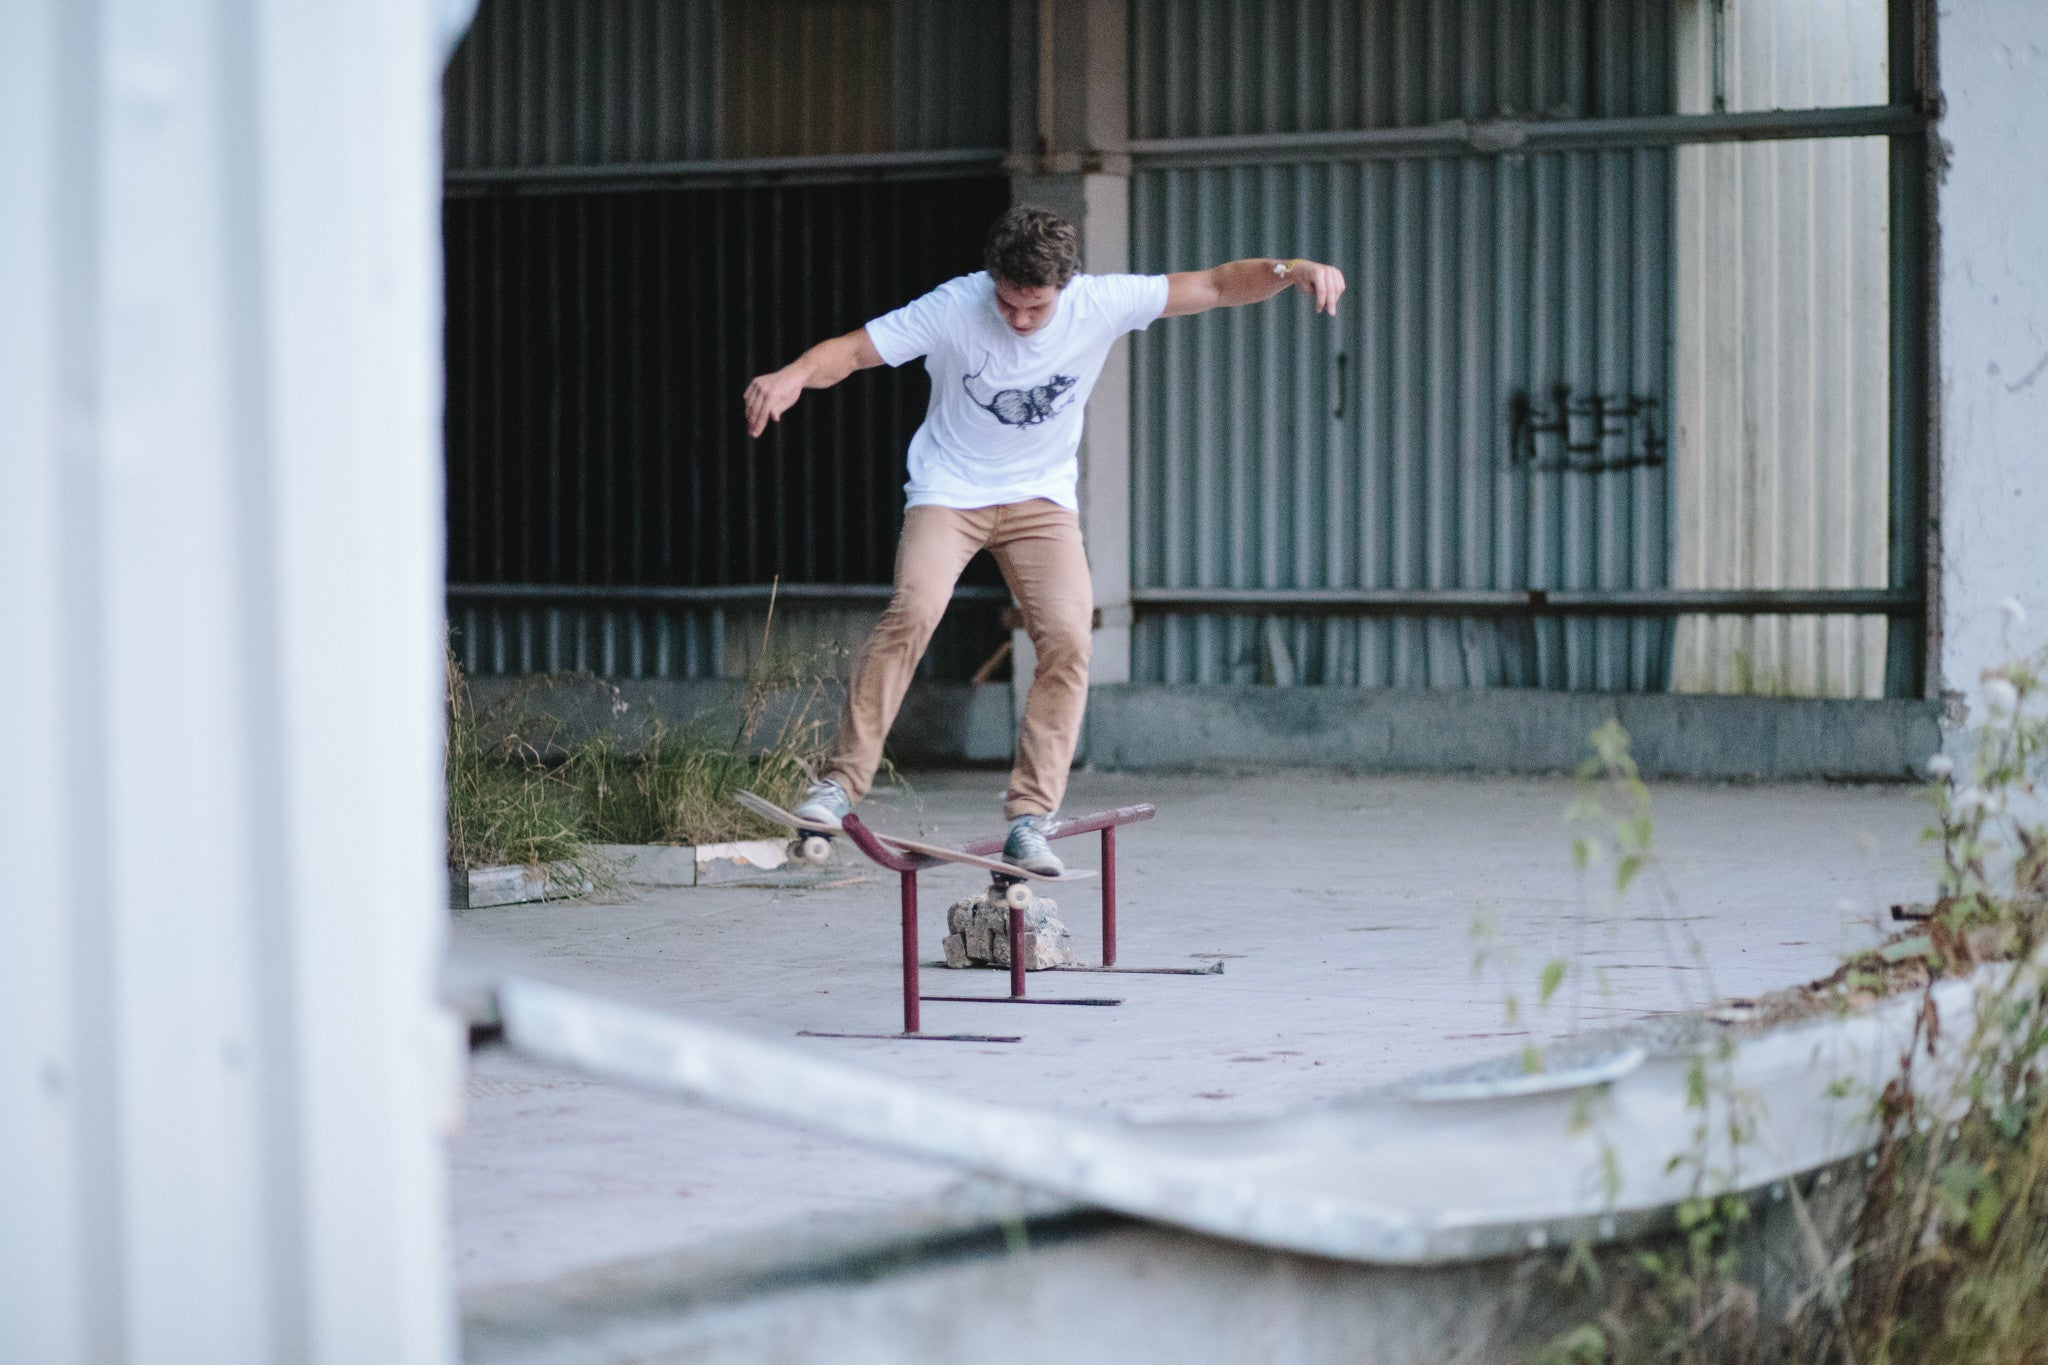 Skate rat Big white t-shirt - Stoked Boardshop  - 4